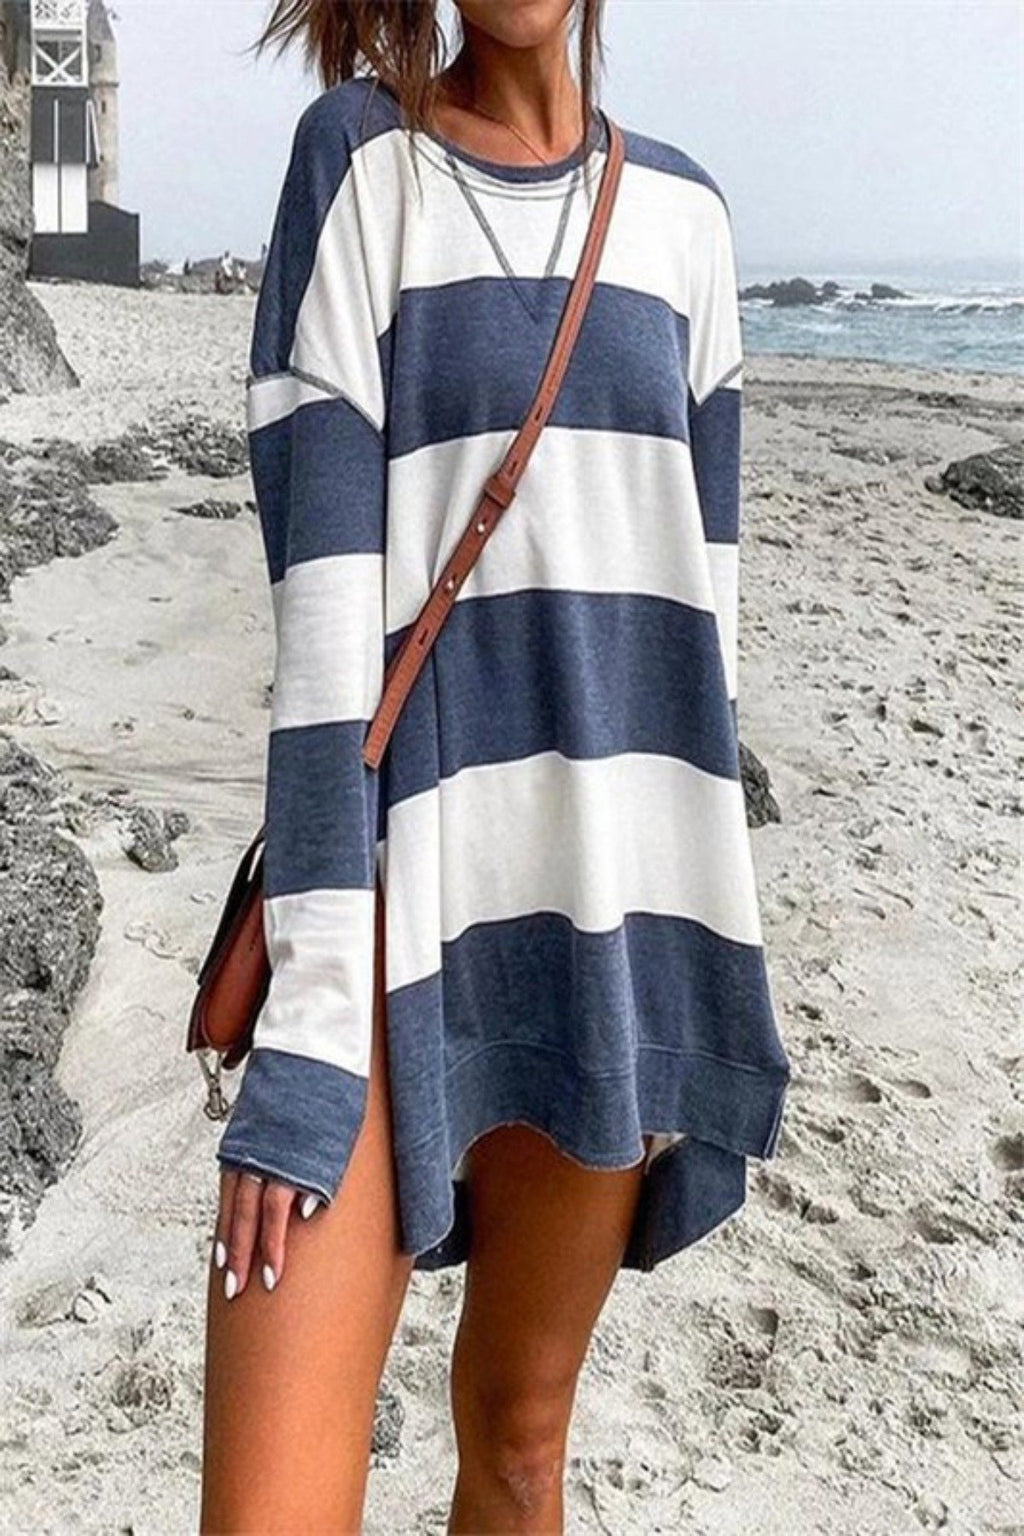 RIPTIDE LOOSE STRIPED LONG SLEEVE SWEATER TOP - [jayden_p]